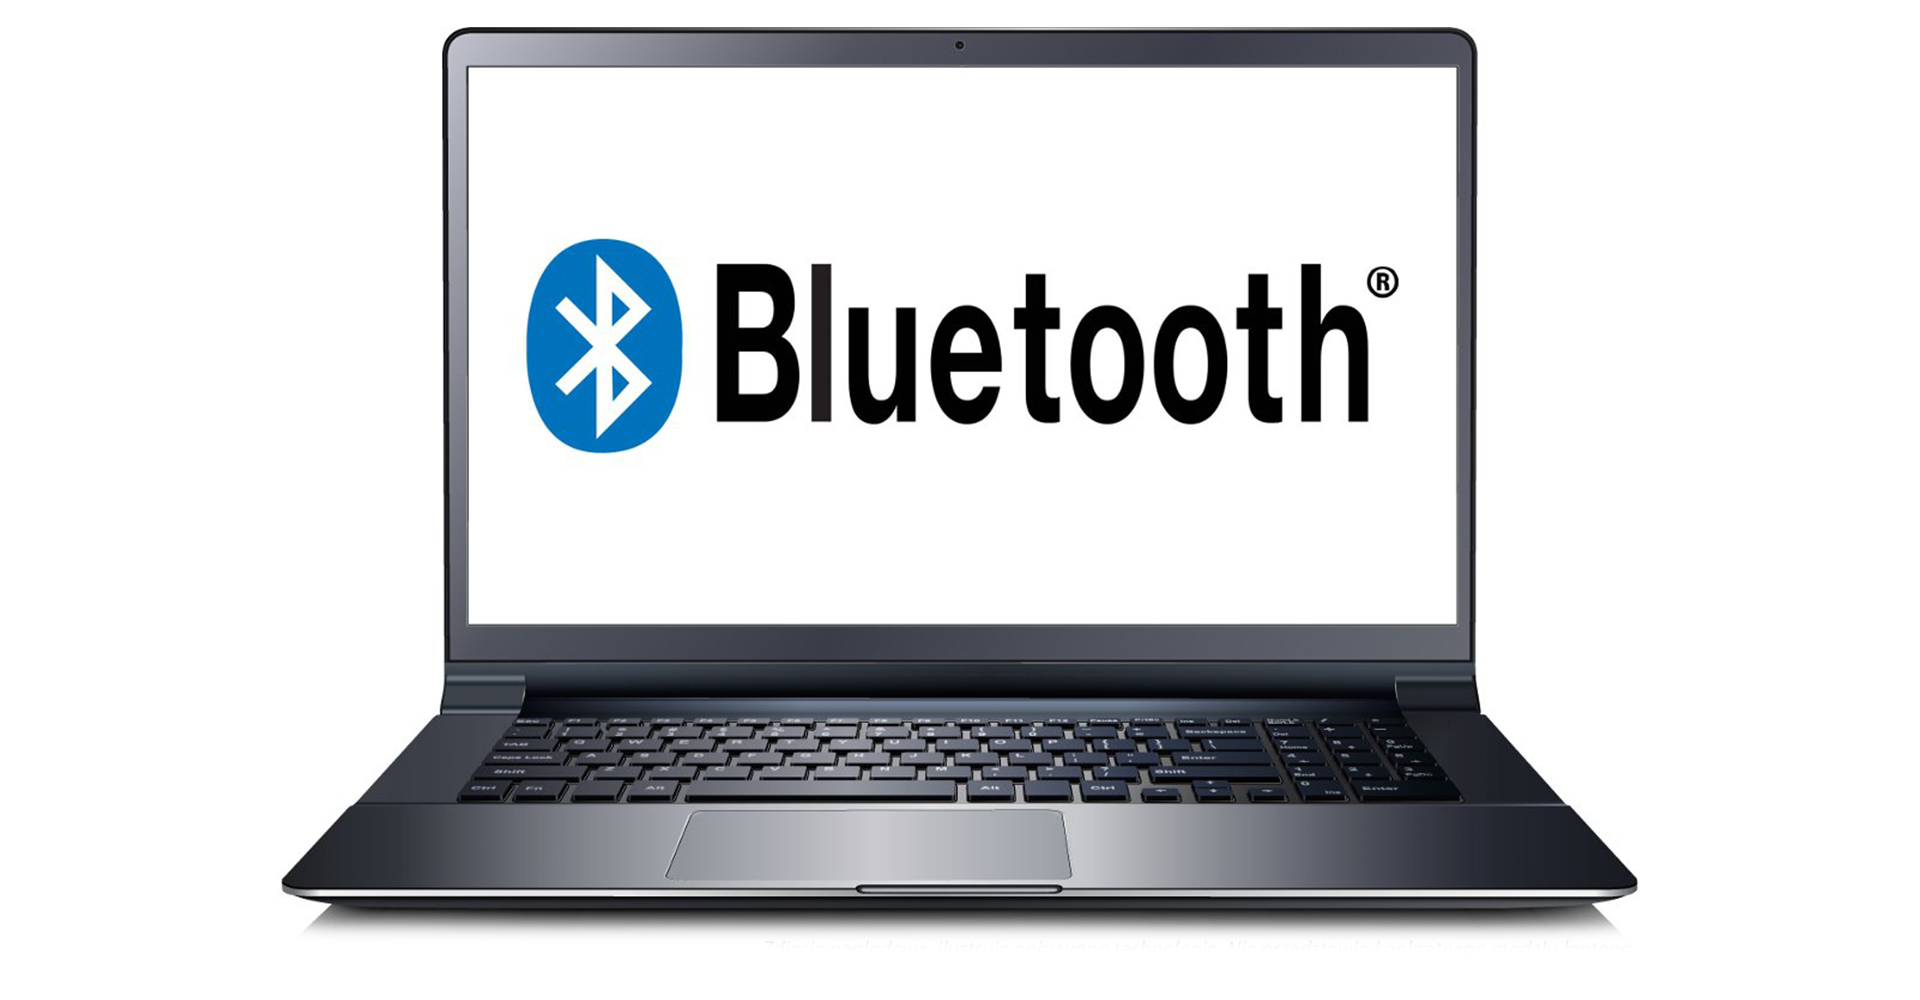 Dell Vostro I3-6006U 8GB 256GB Win10Home                             Bluetooth